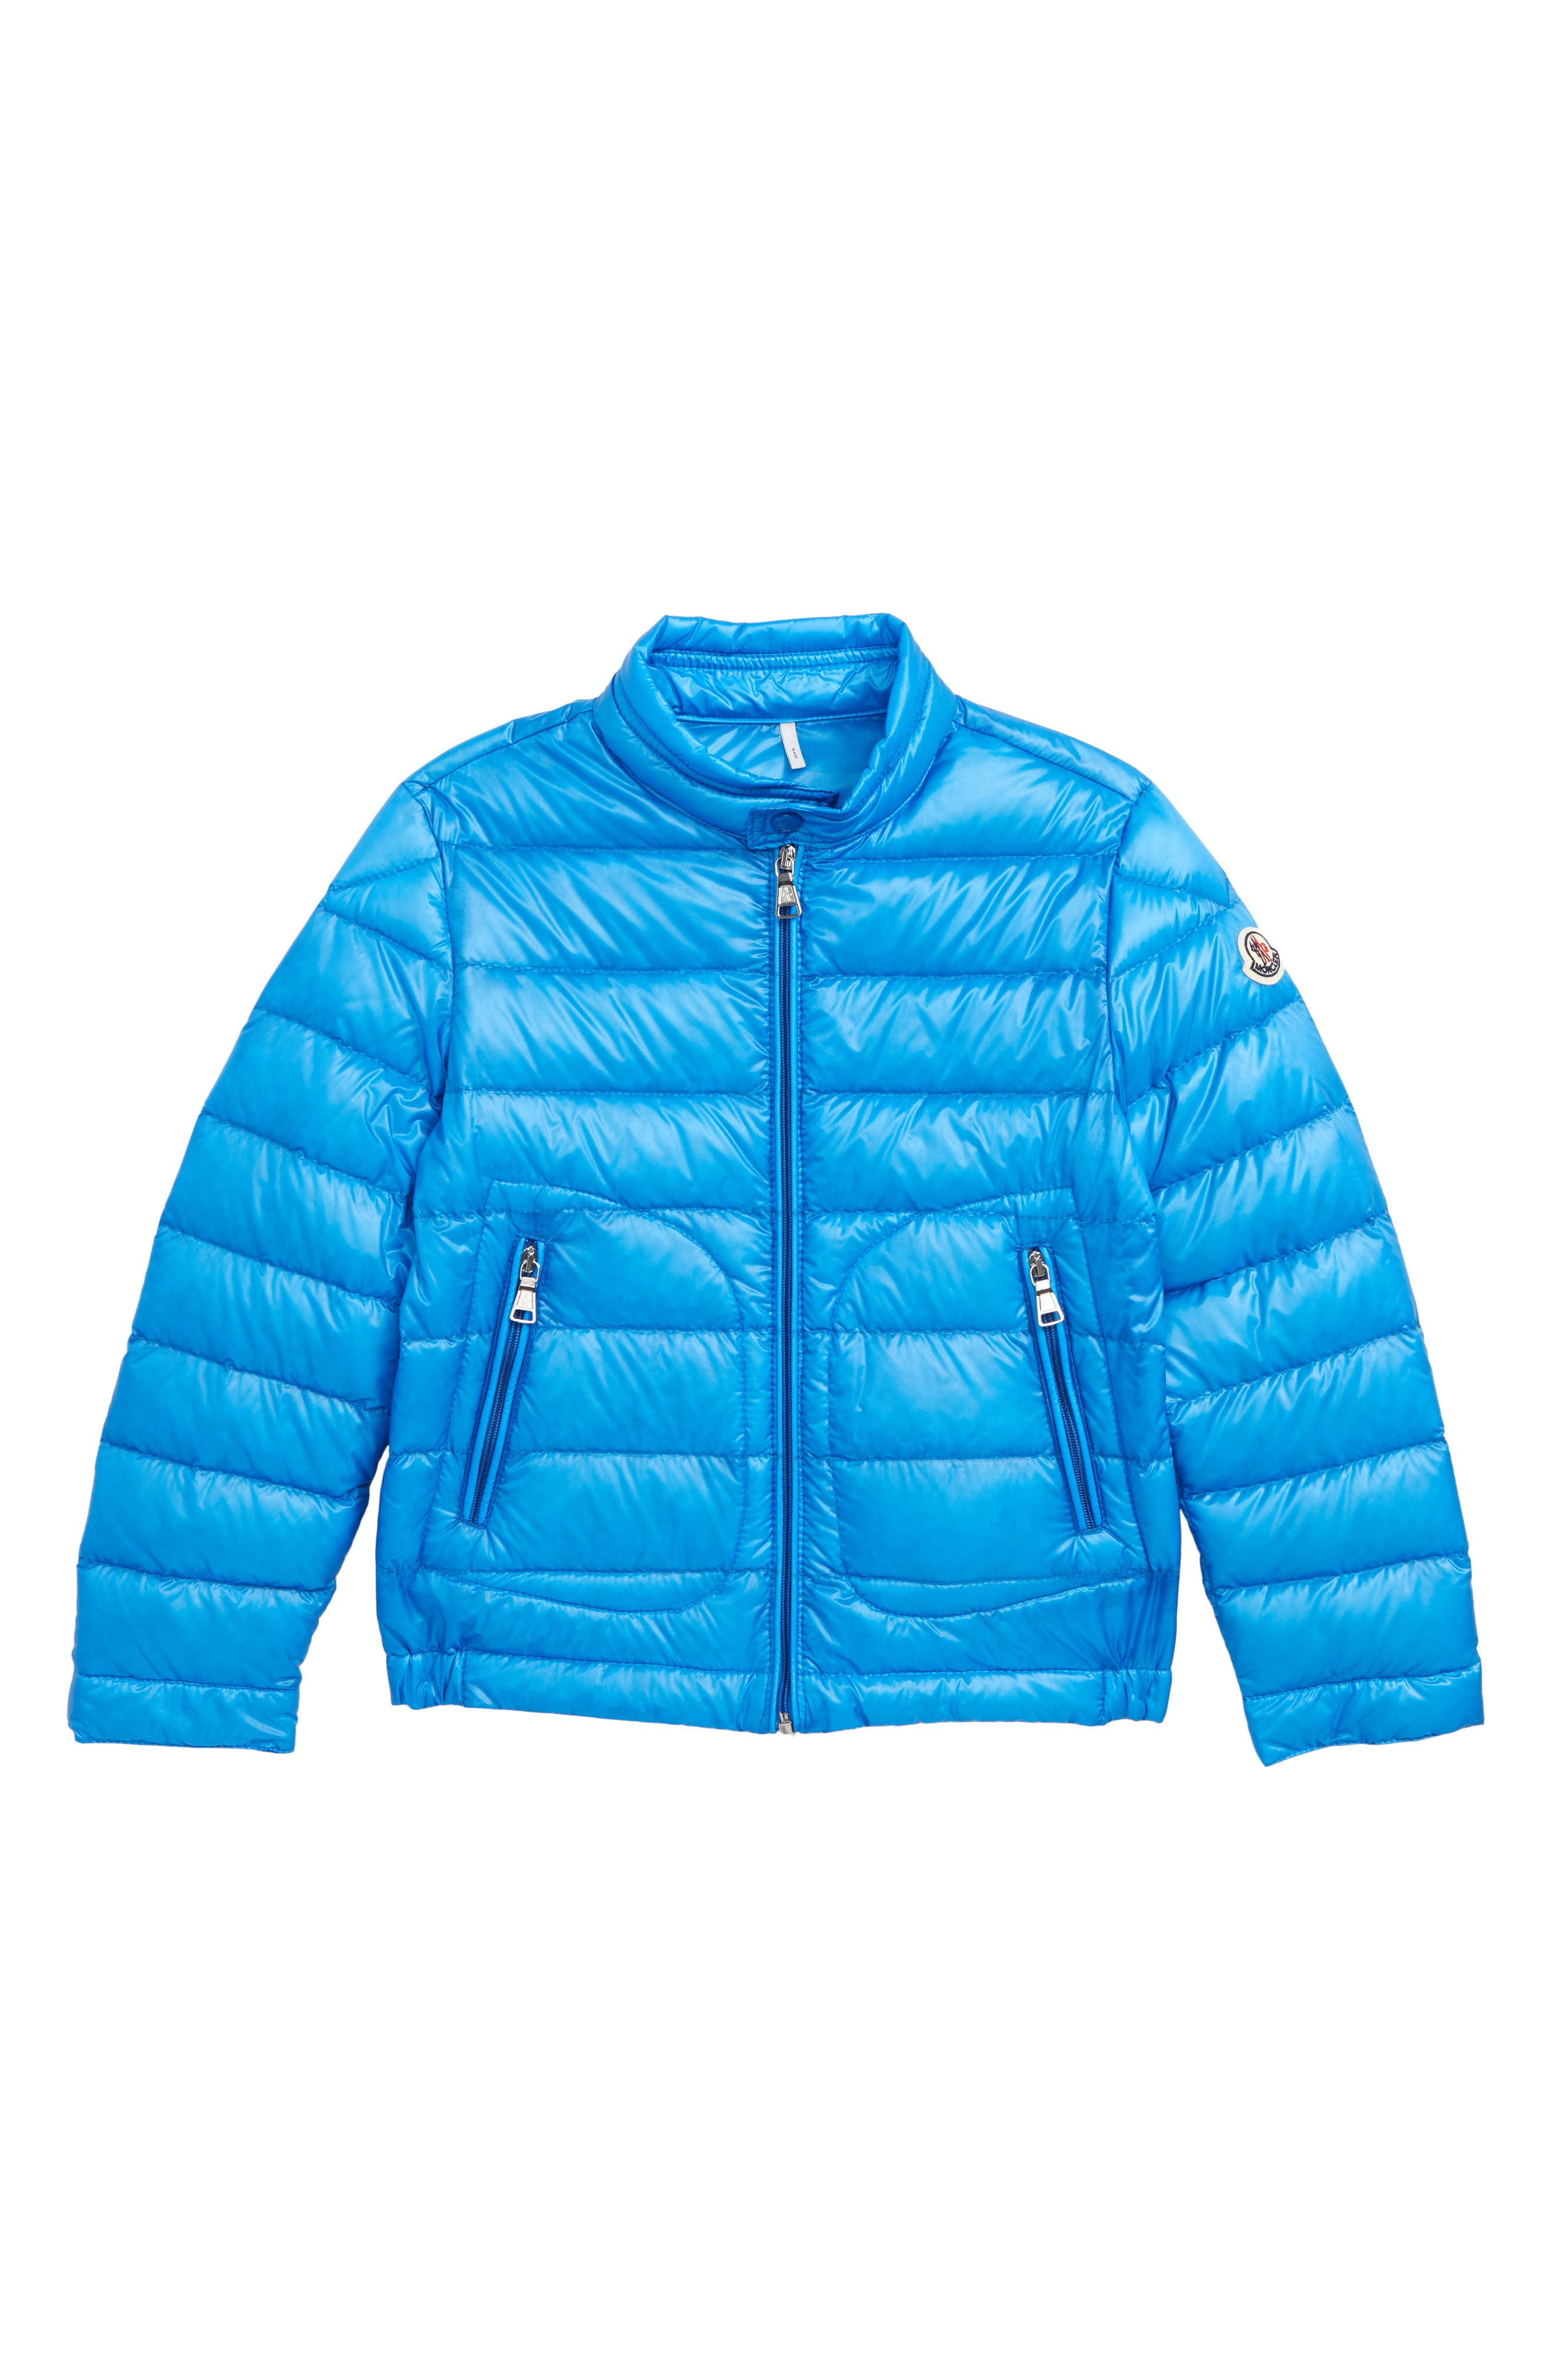 Acorus Channel Quilted Down Moto Jacket,                             Main thumbnail 1, color,                             726 BLUE